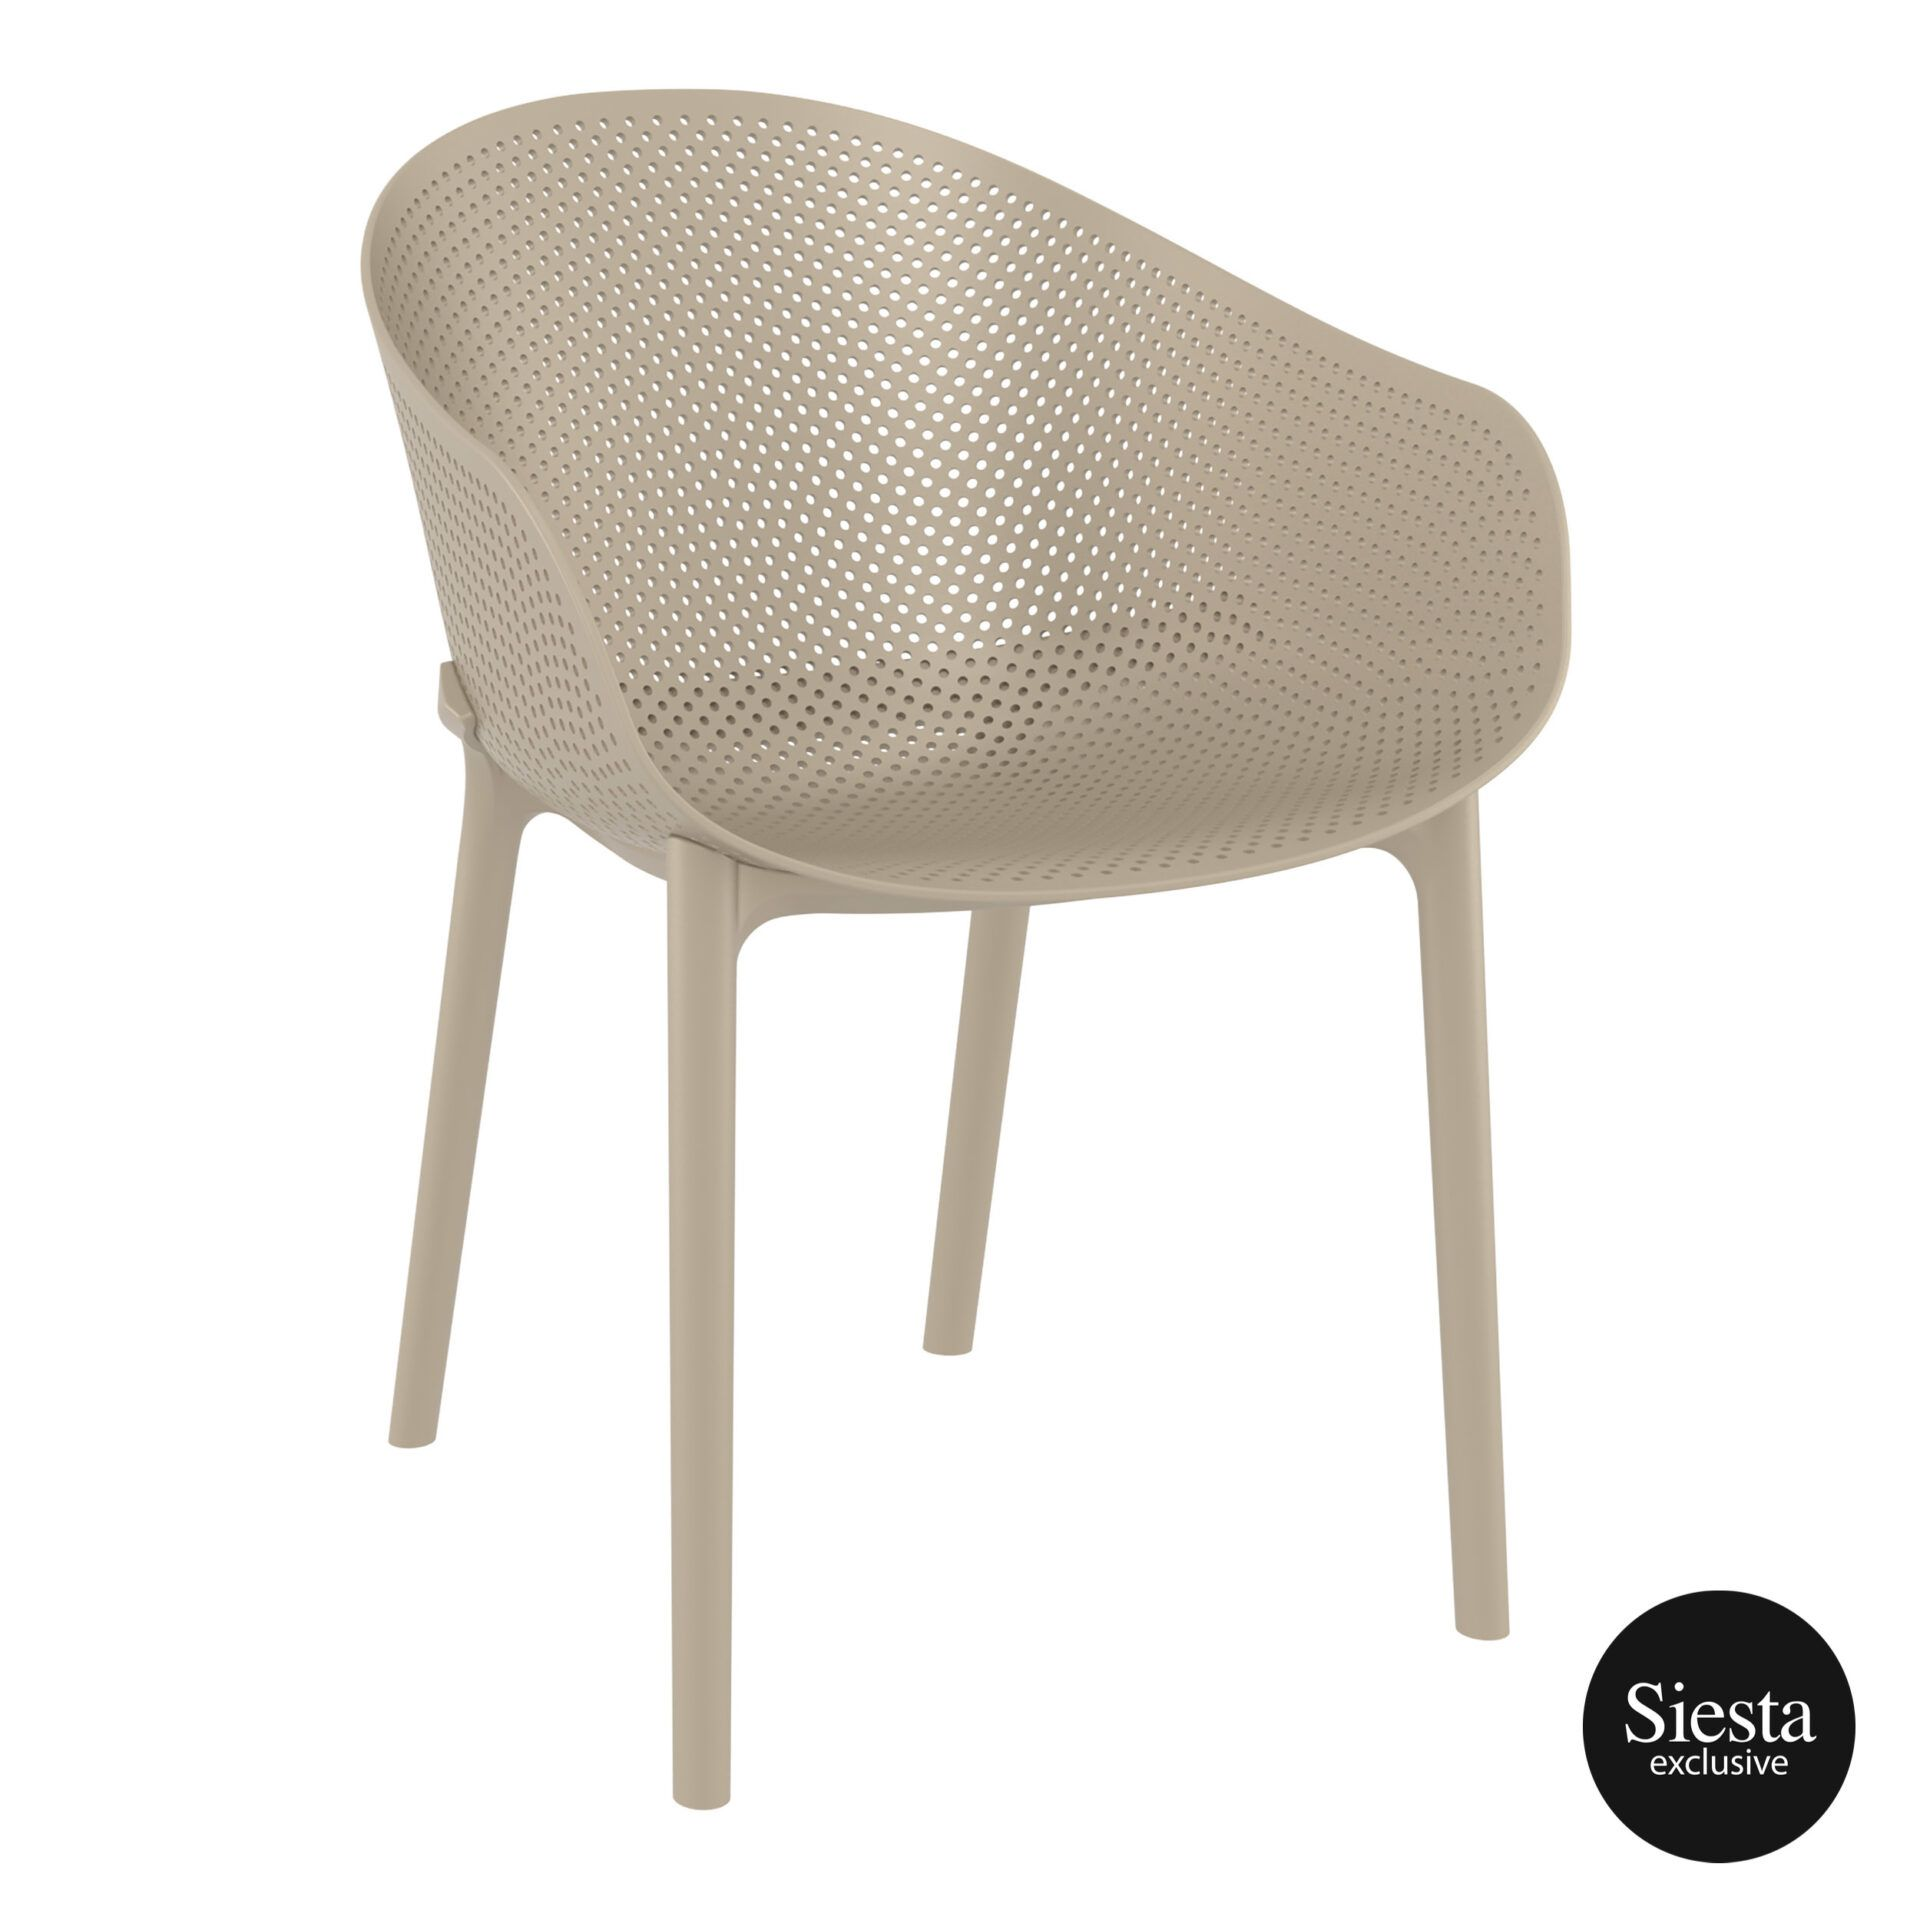 outdoor seating polypropylene sky chair taupe front side